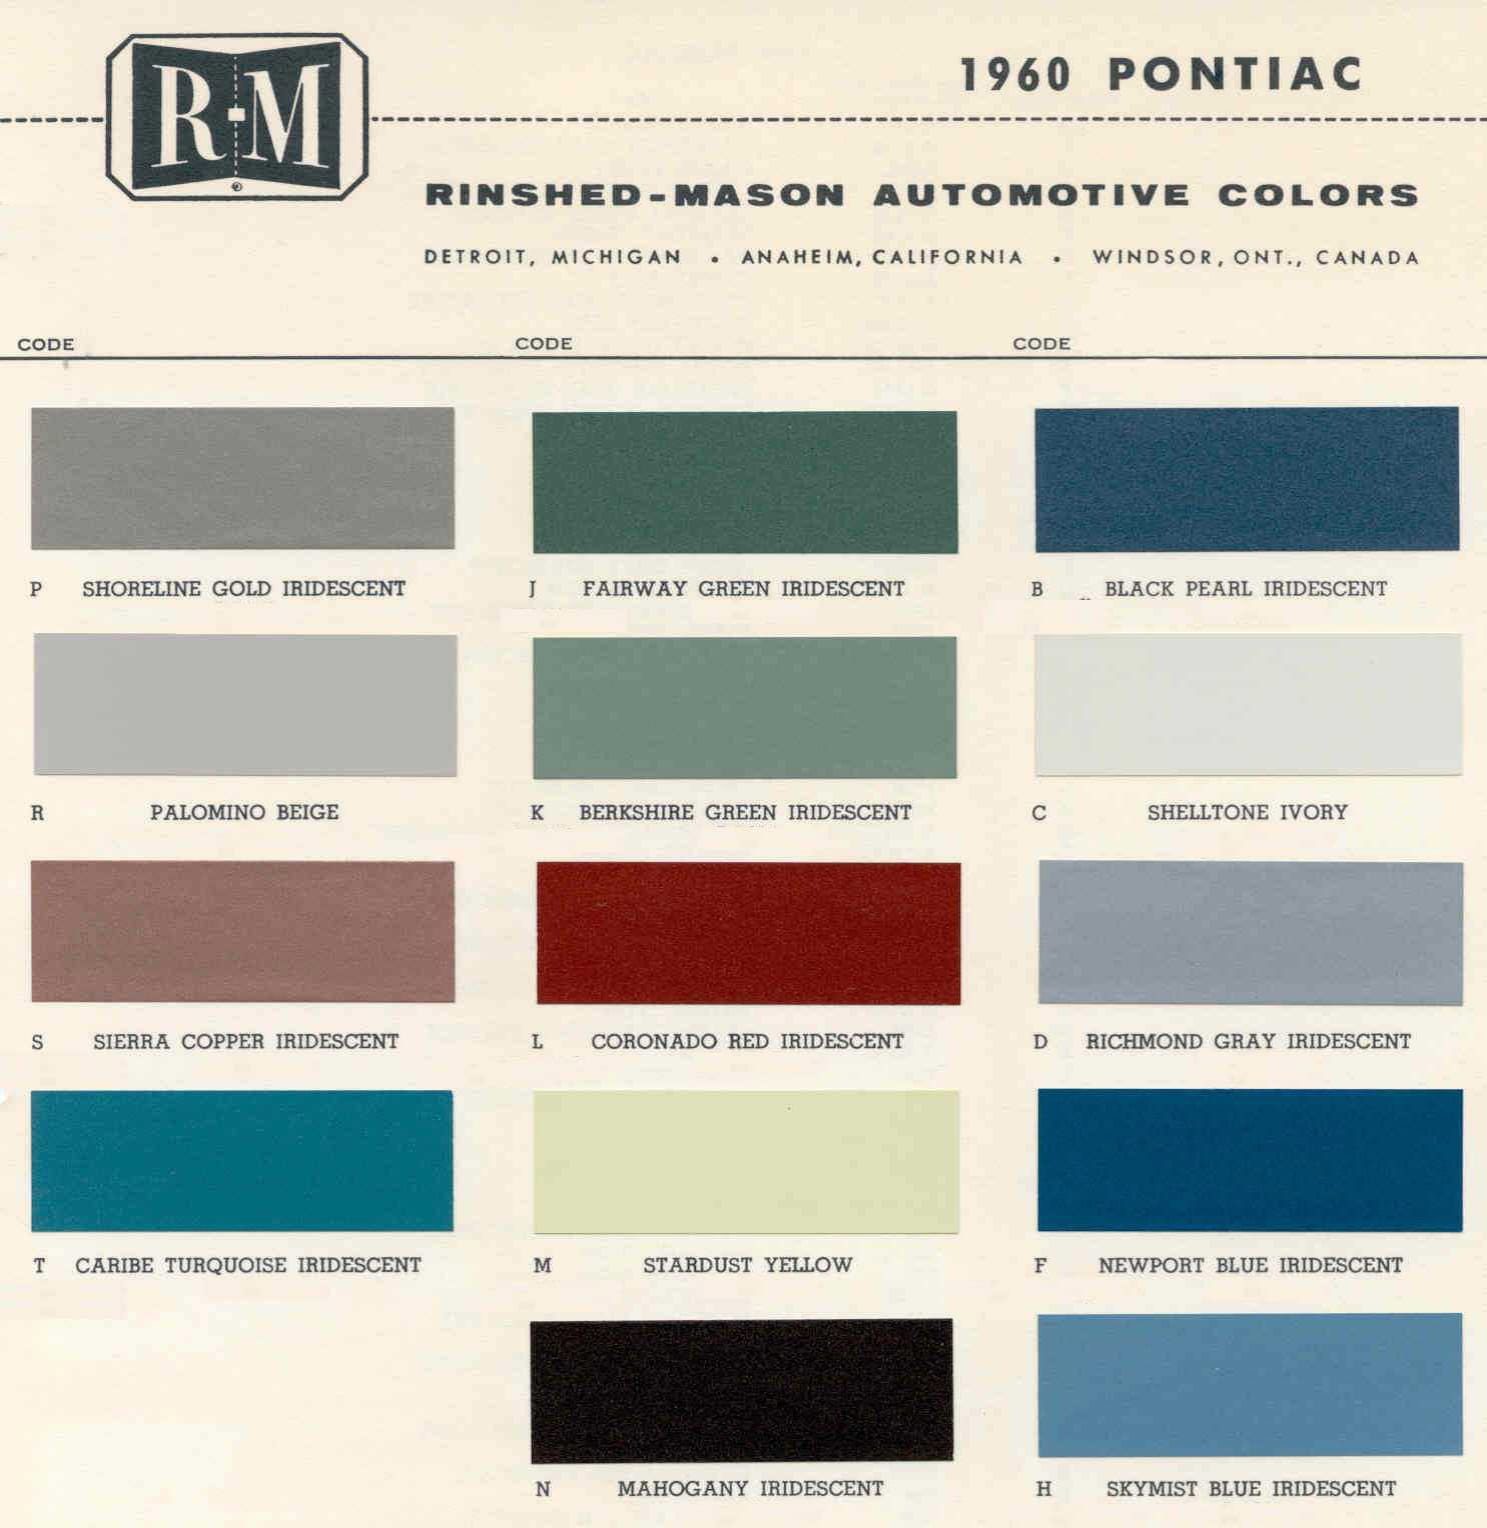 Color Code and Paint Color Chart for Pontiac in 1960